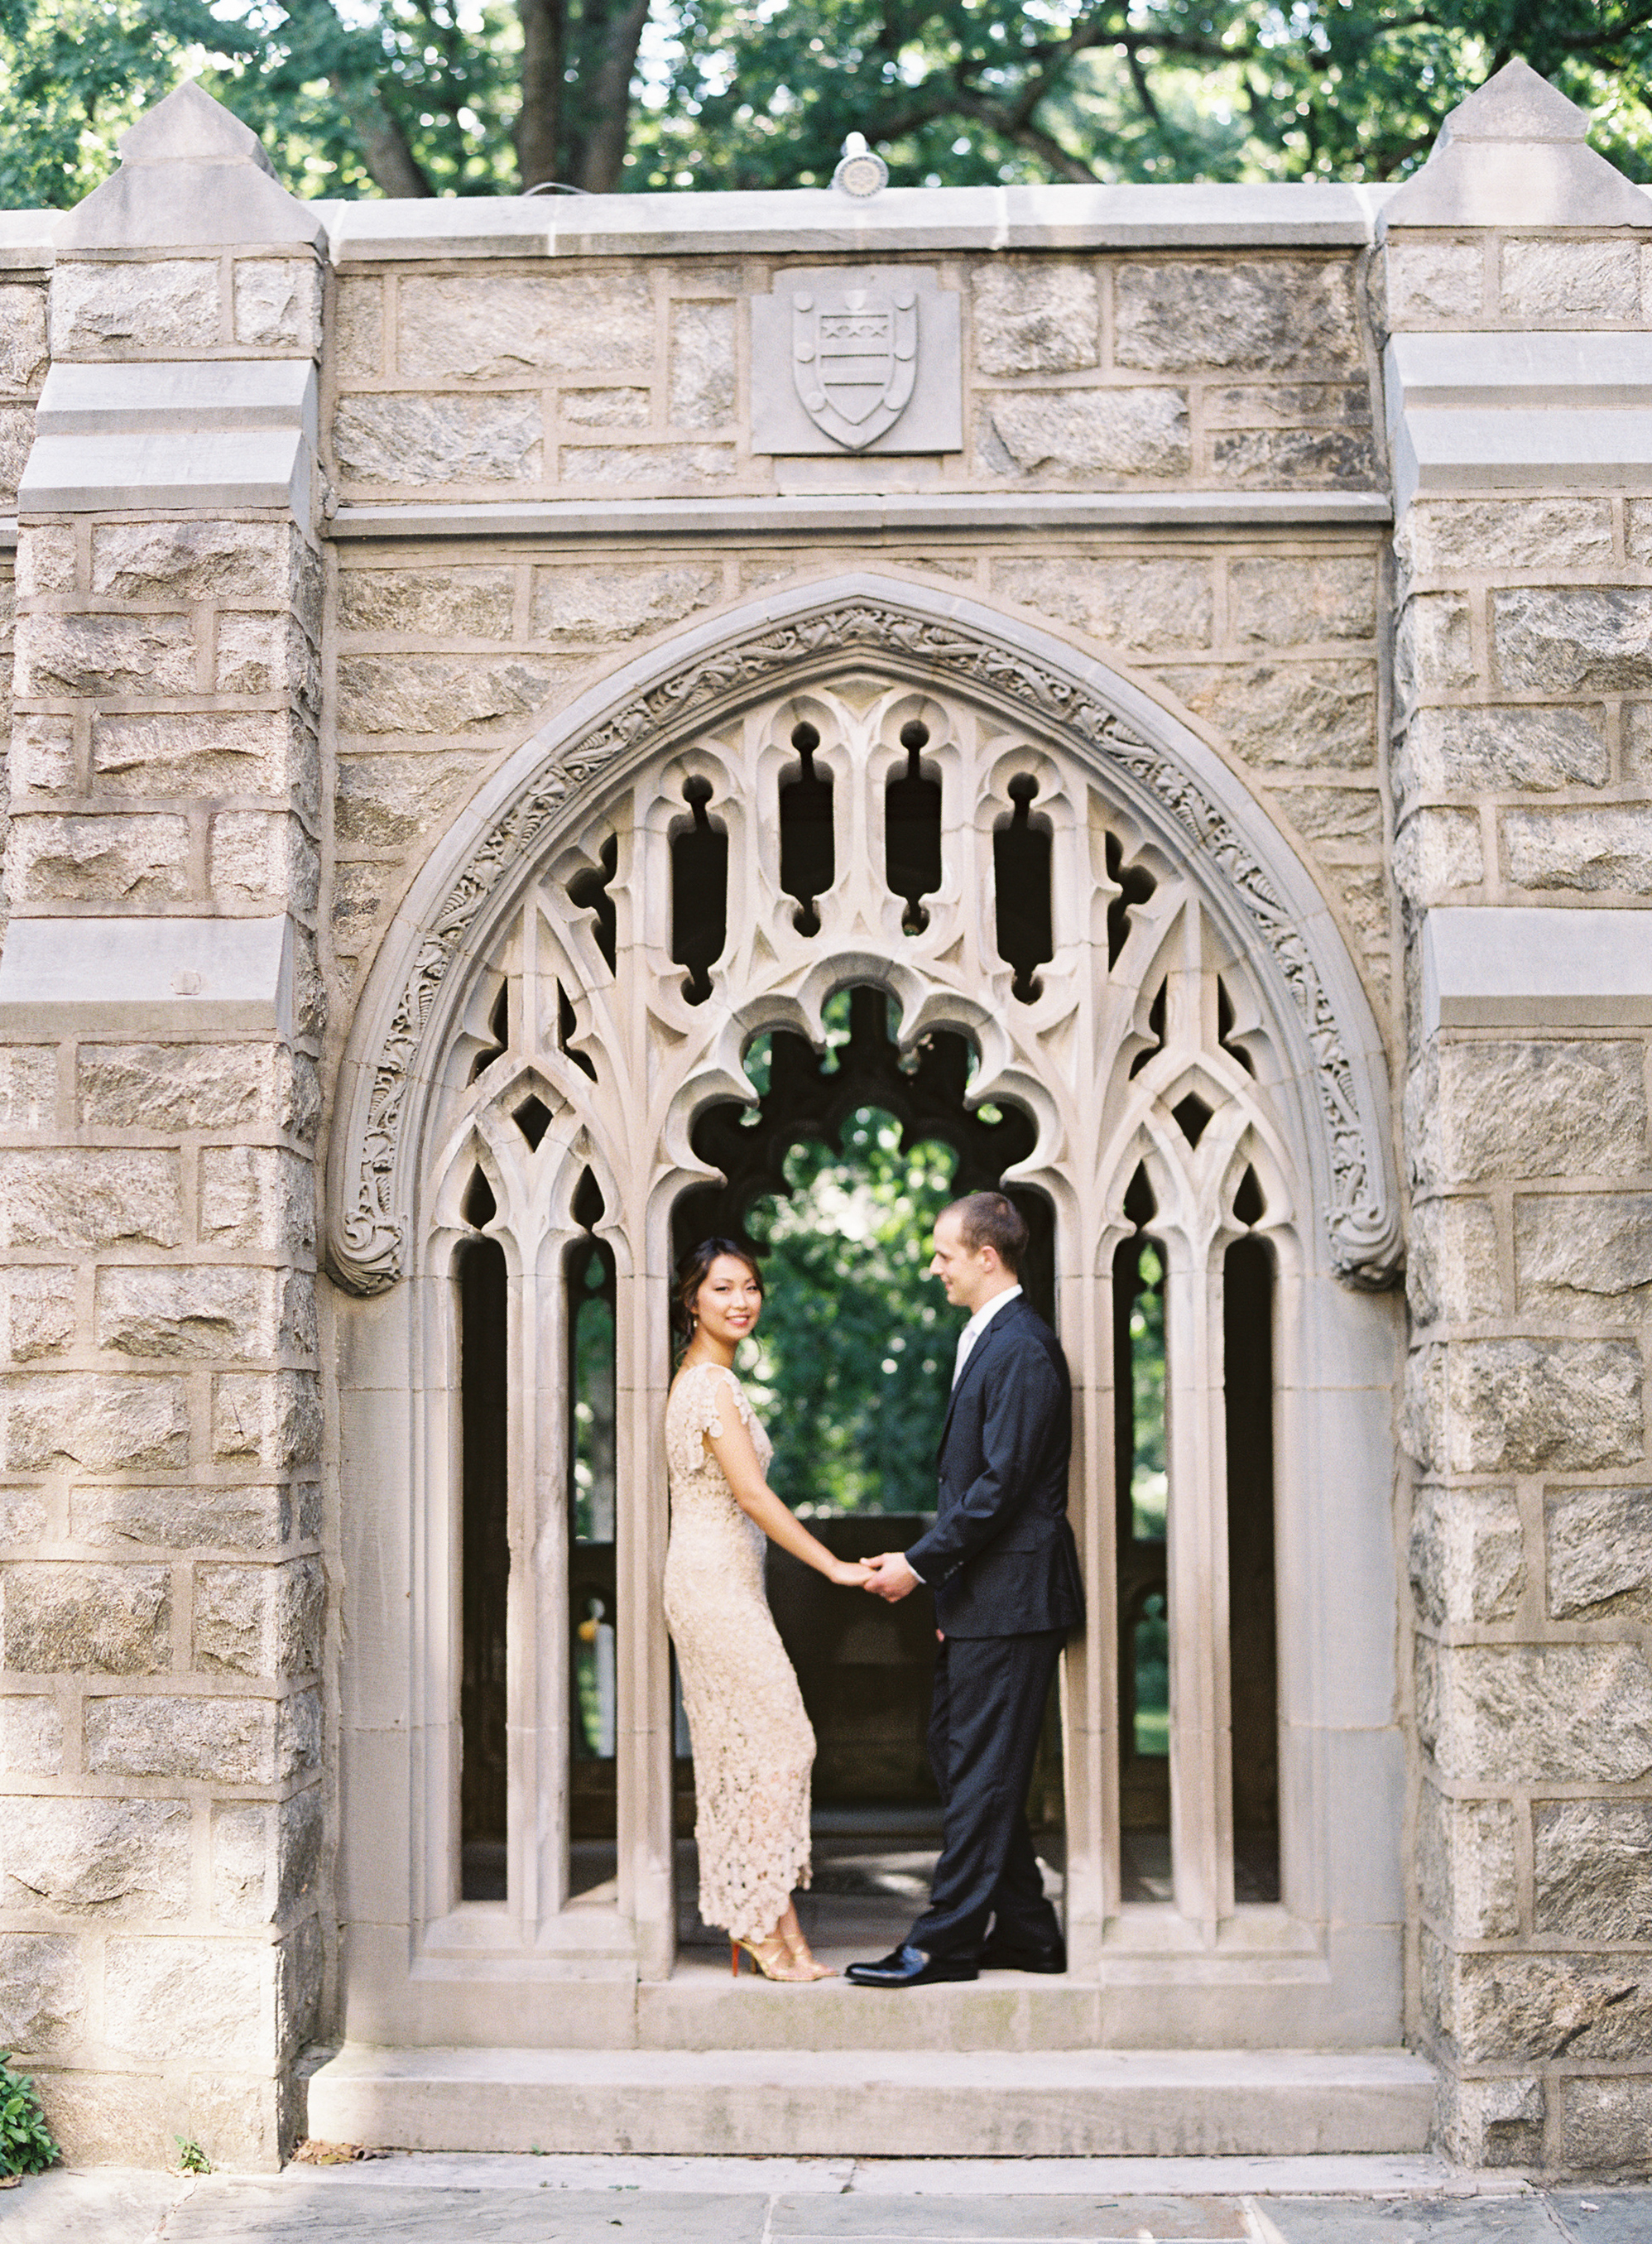 Meghan Mehan Photography - New York City Film Wedding Photographer | New York | San Francisco | Napa | Sonoma | Los Angeles 009.jpg